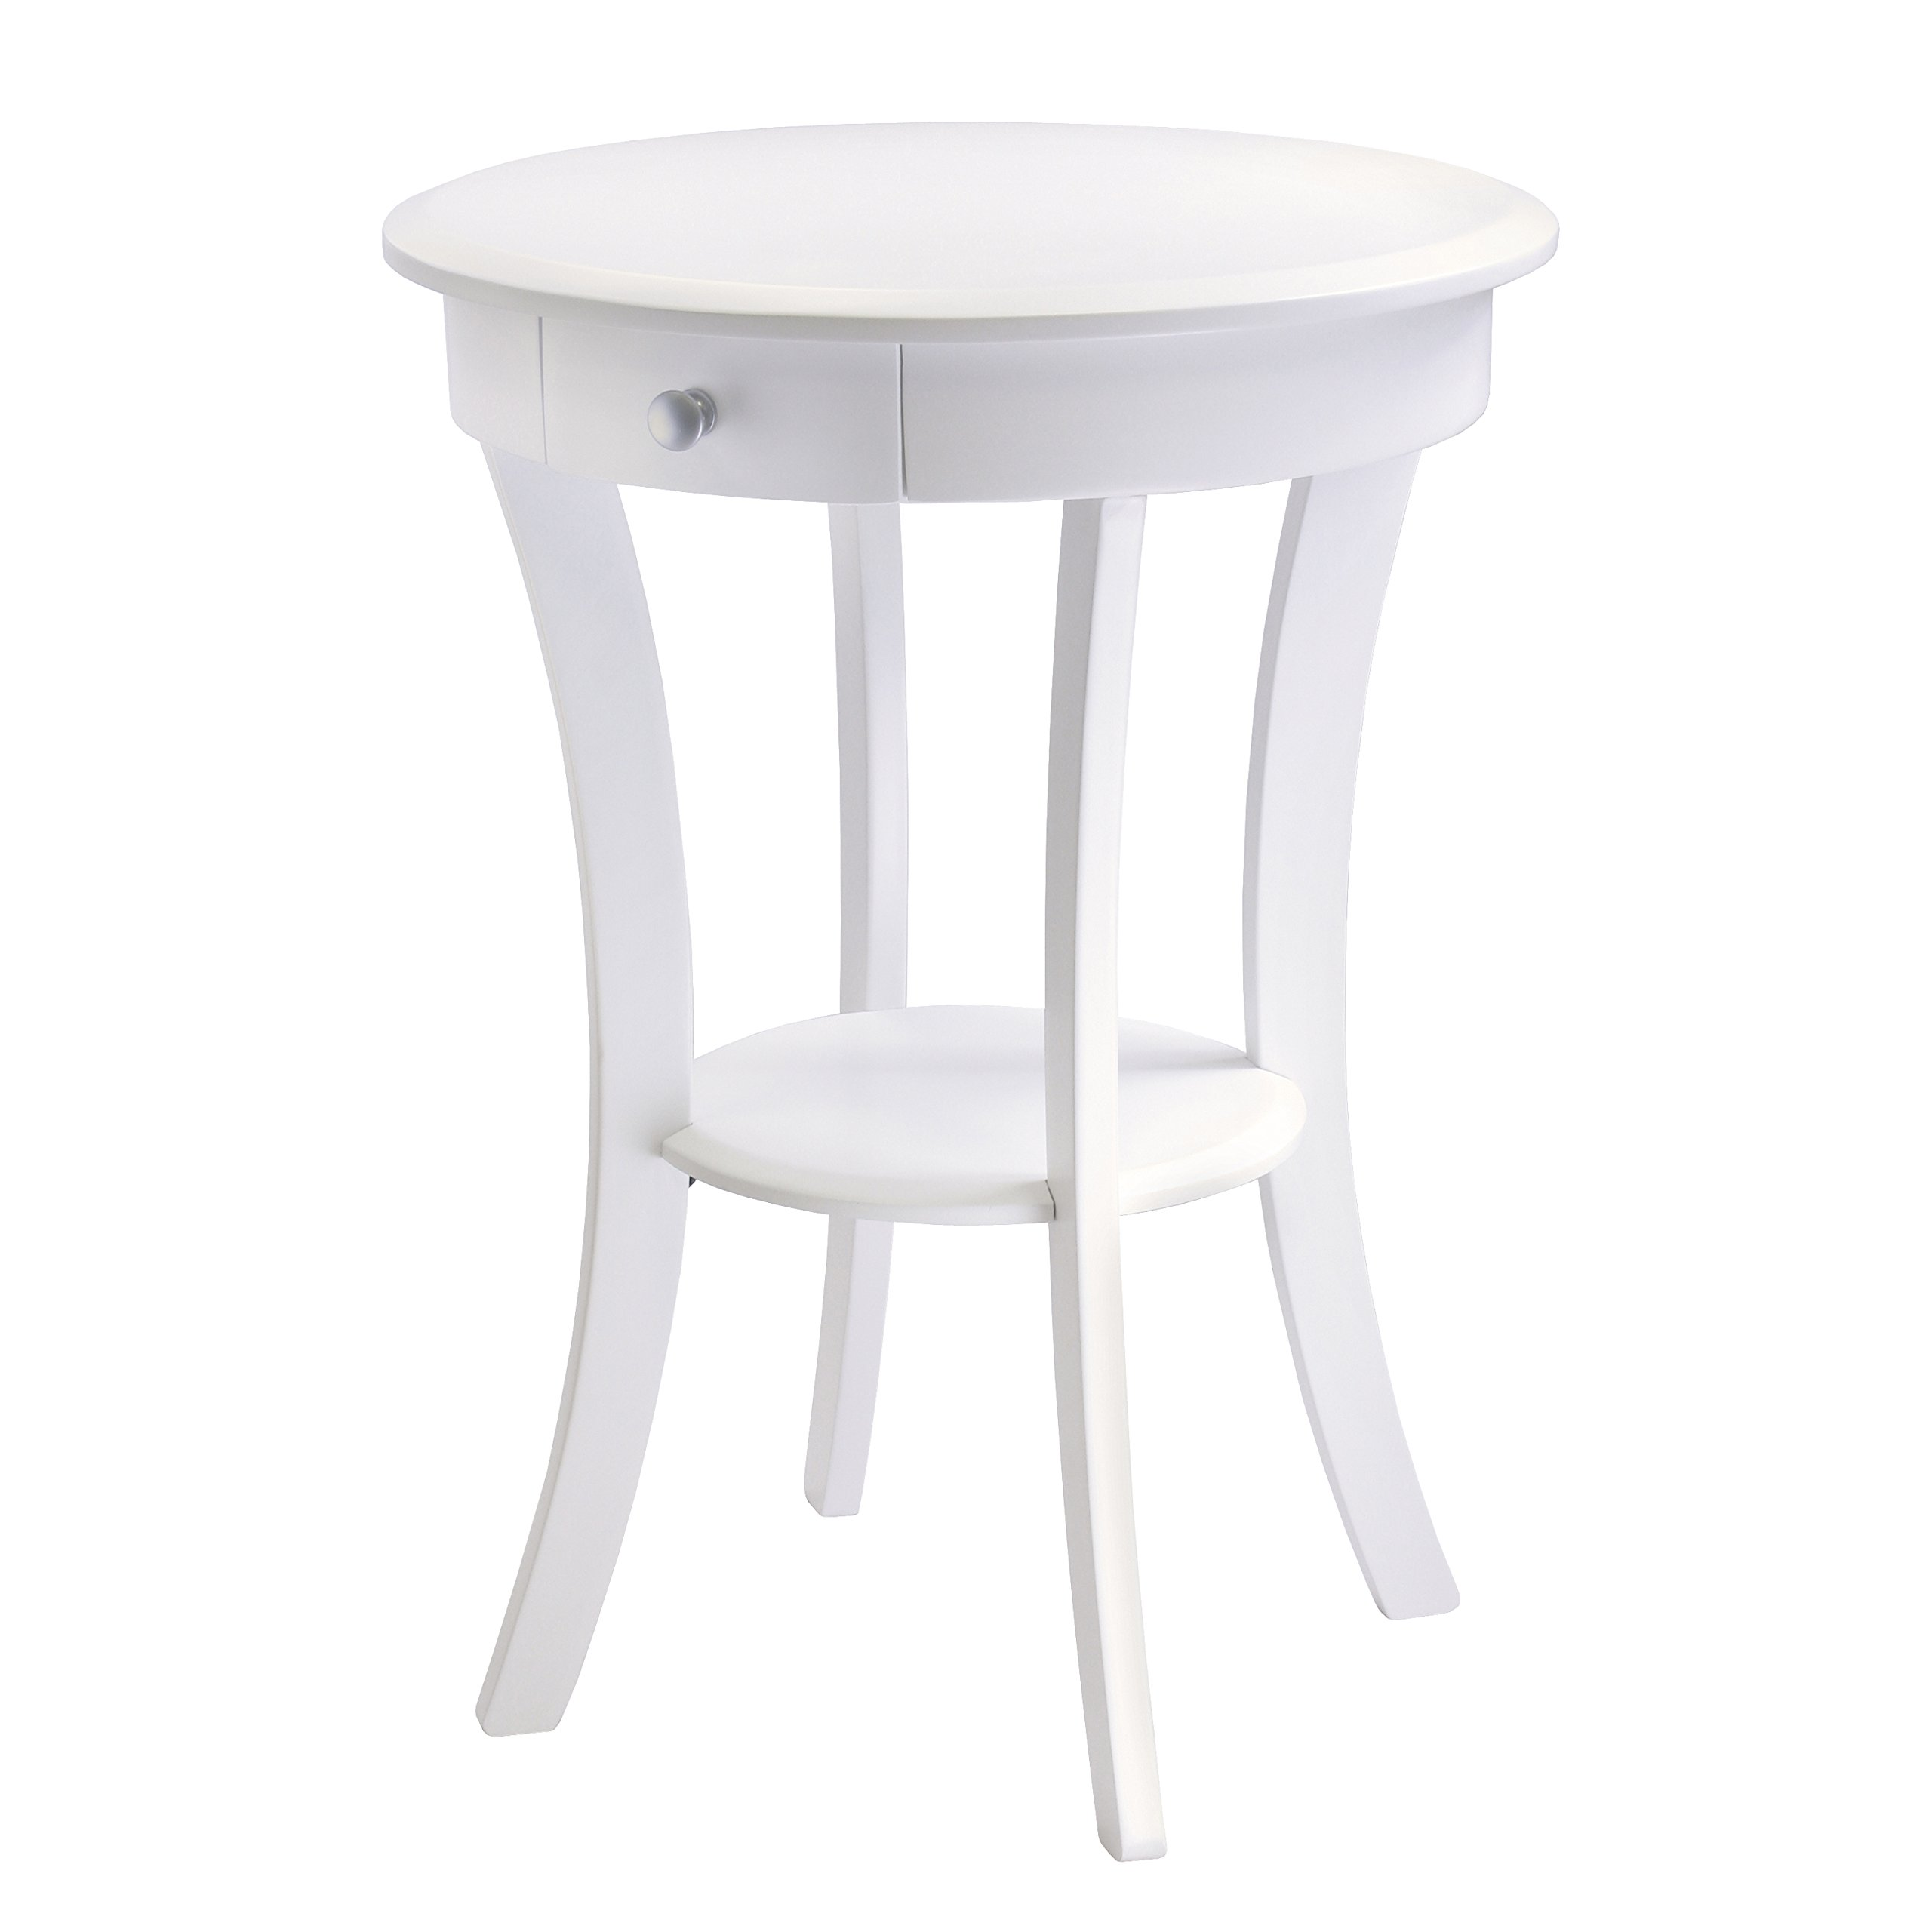 delectable target accent end tables white for bench and storage threshold furniture antique cabinet room round tall ott gold outdoor decorative table modern living glass kijiji